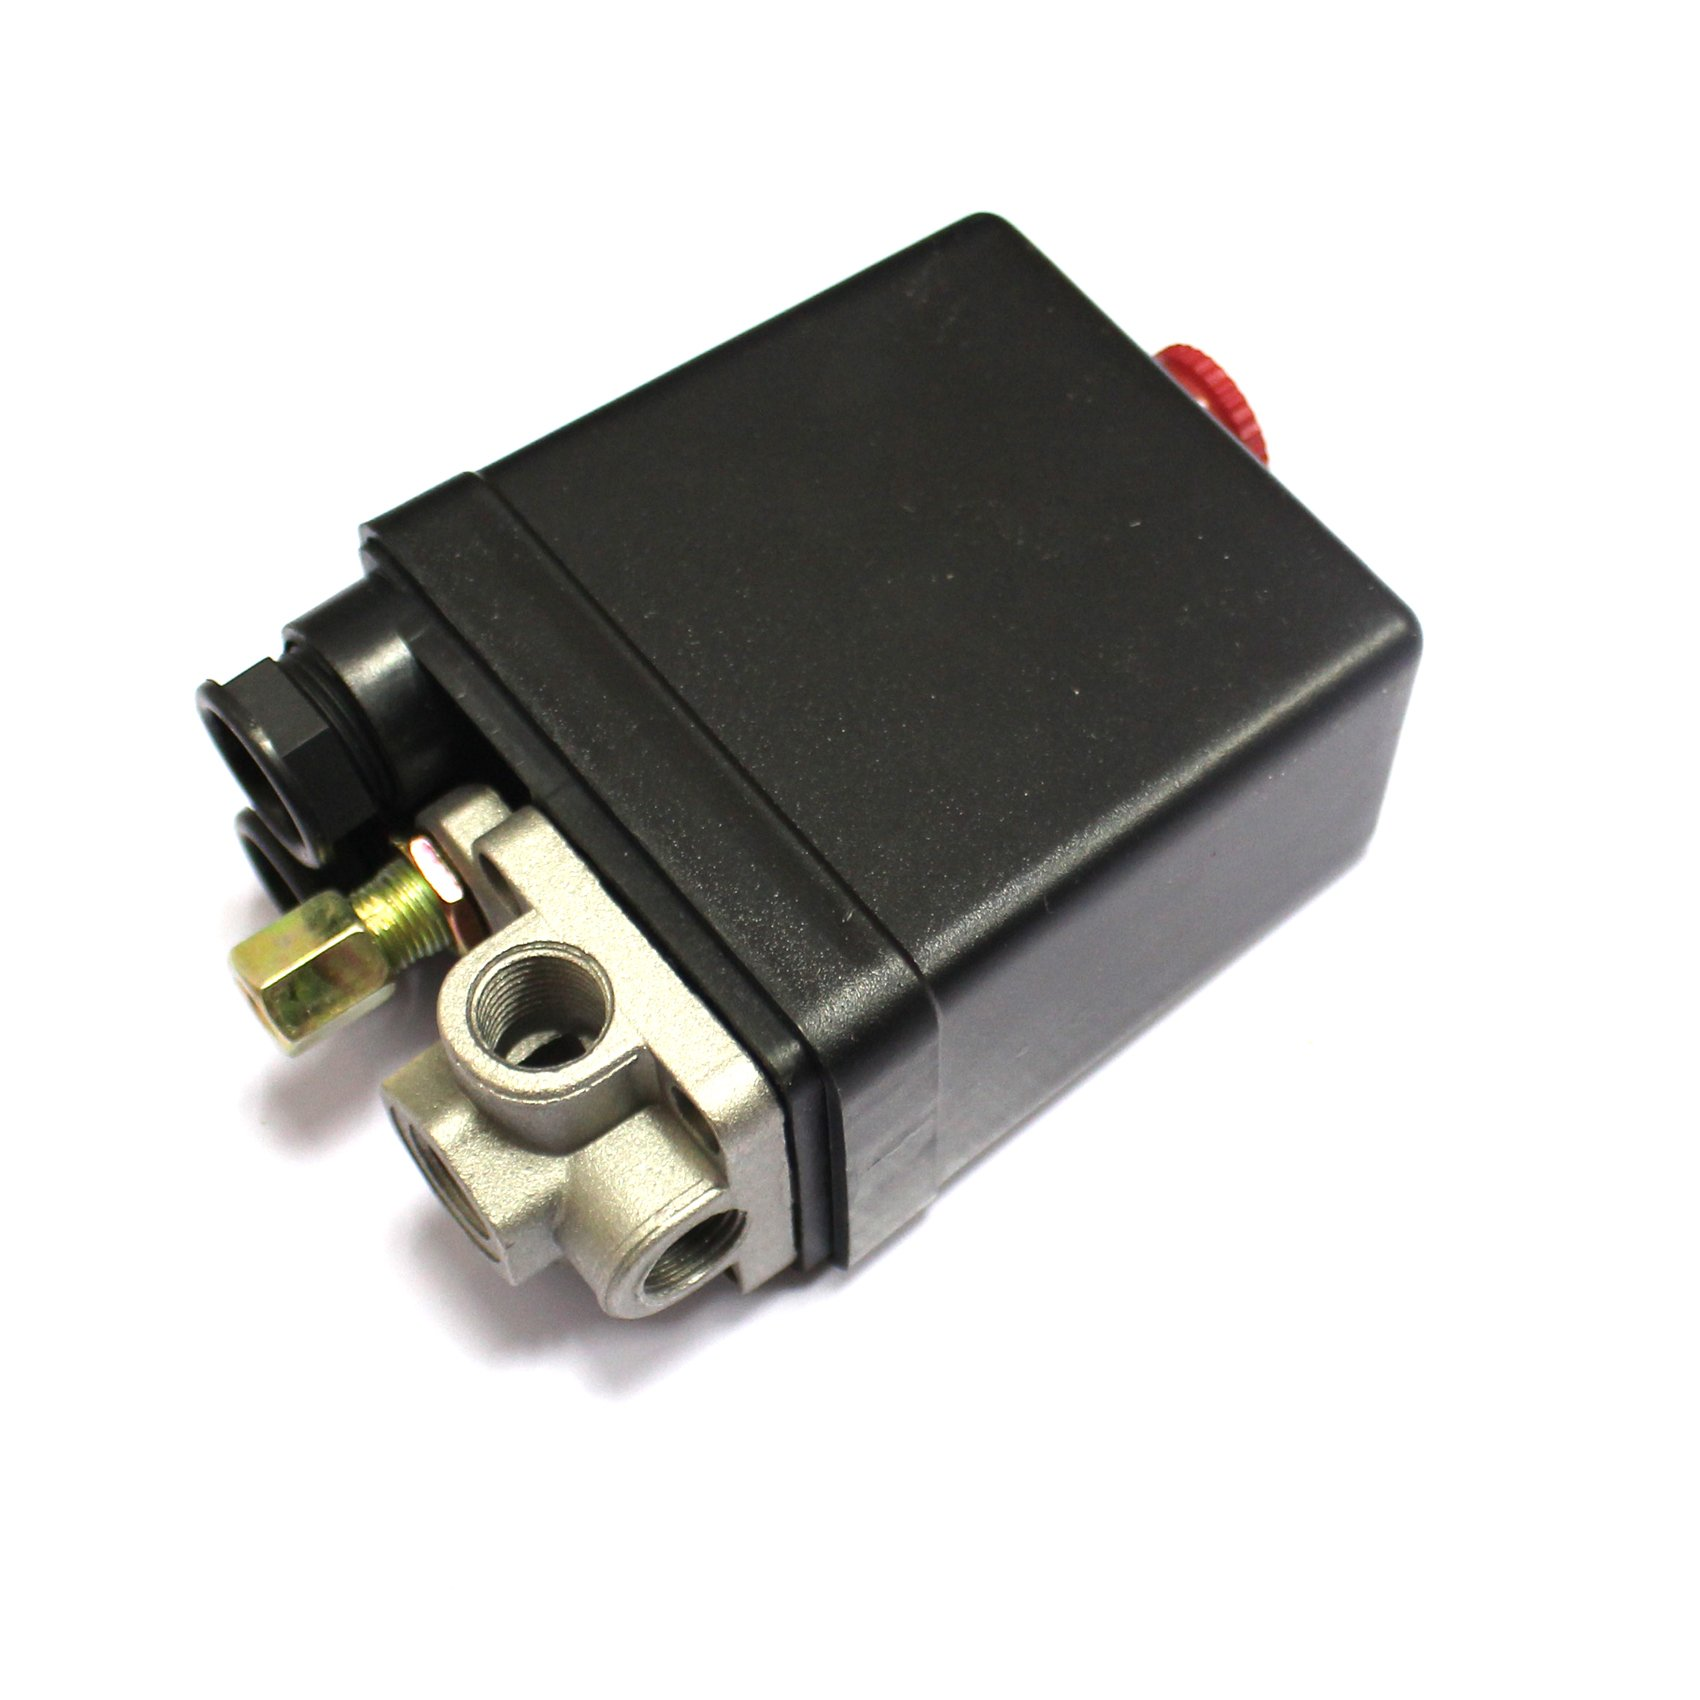 S-Union New Air Compressor Pressure Switch Unload Valve for Hitachi 882-609 PS104PPL Push by S-Union (Image #1)